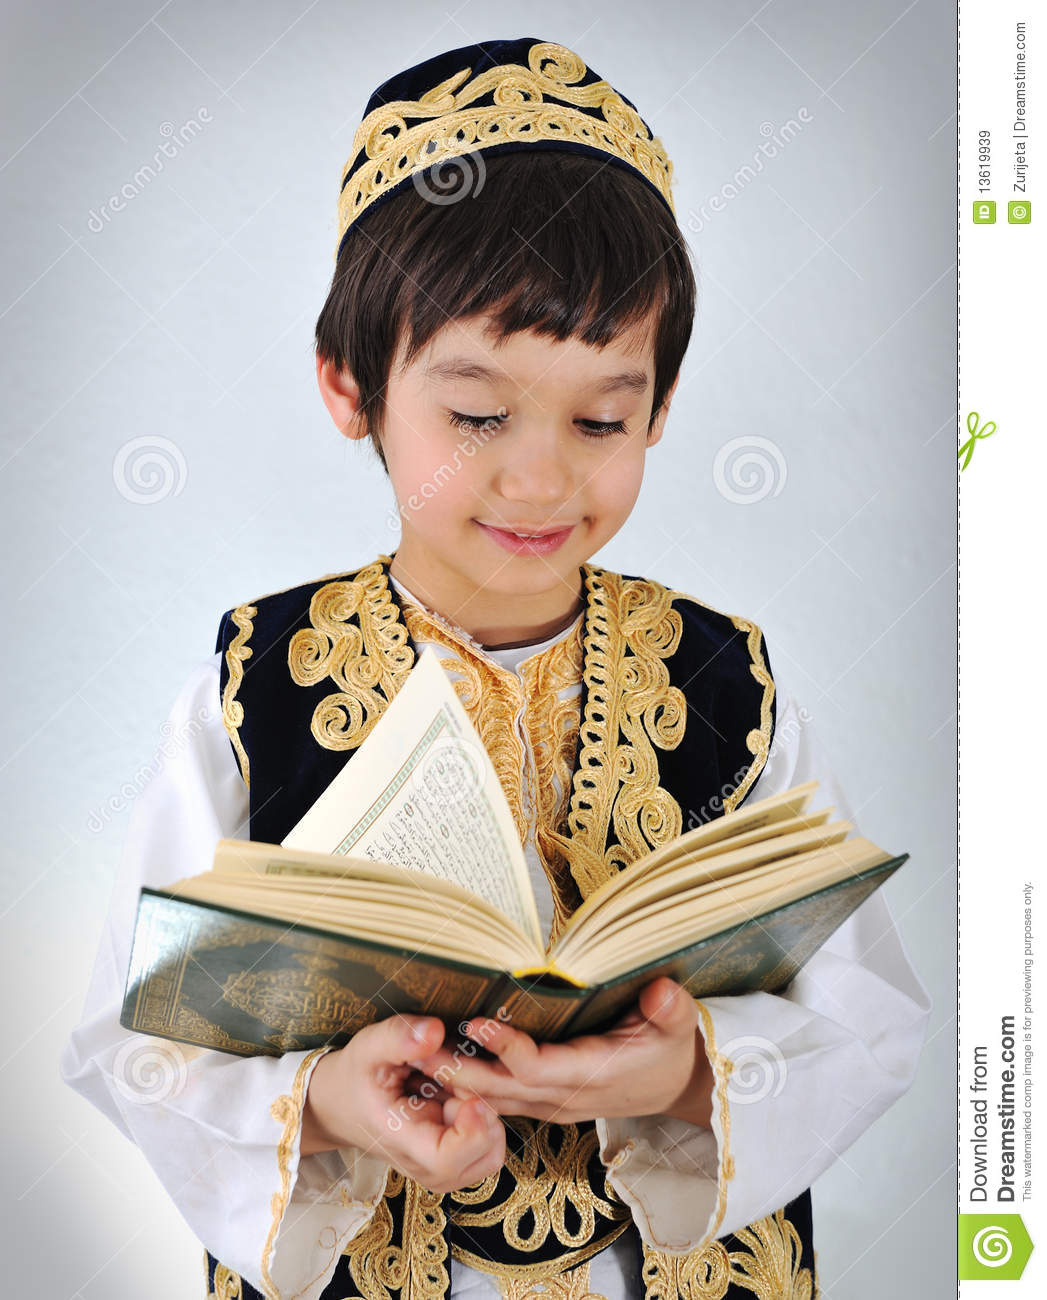 Kids with quran